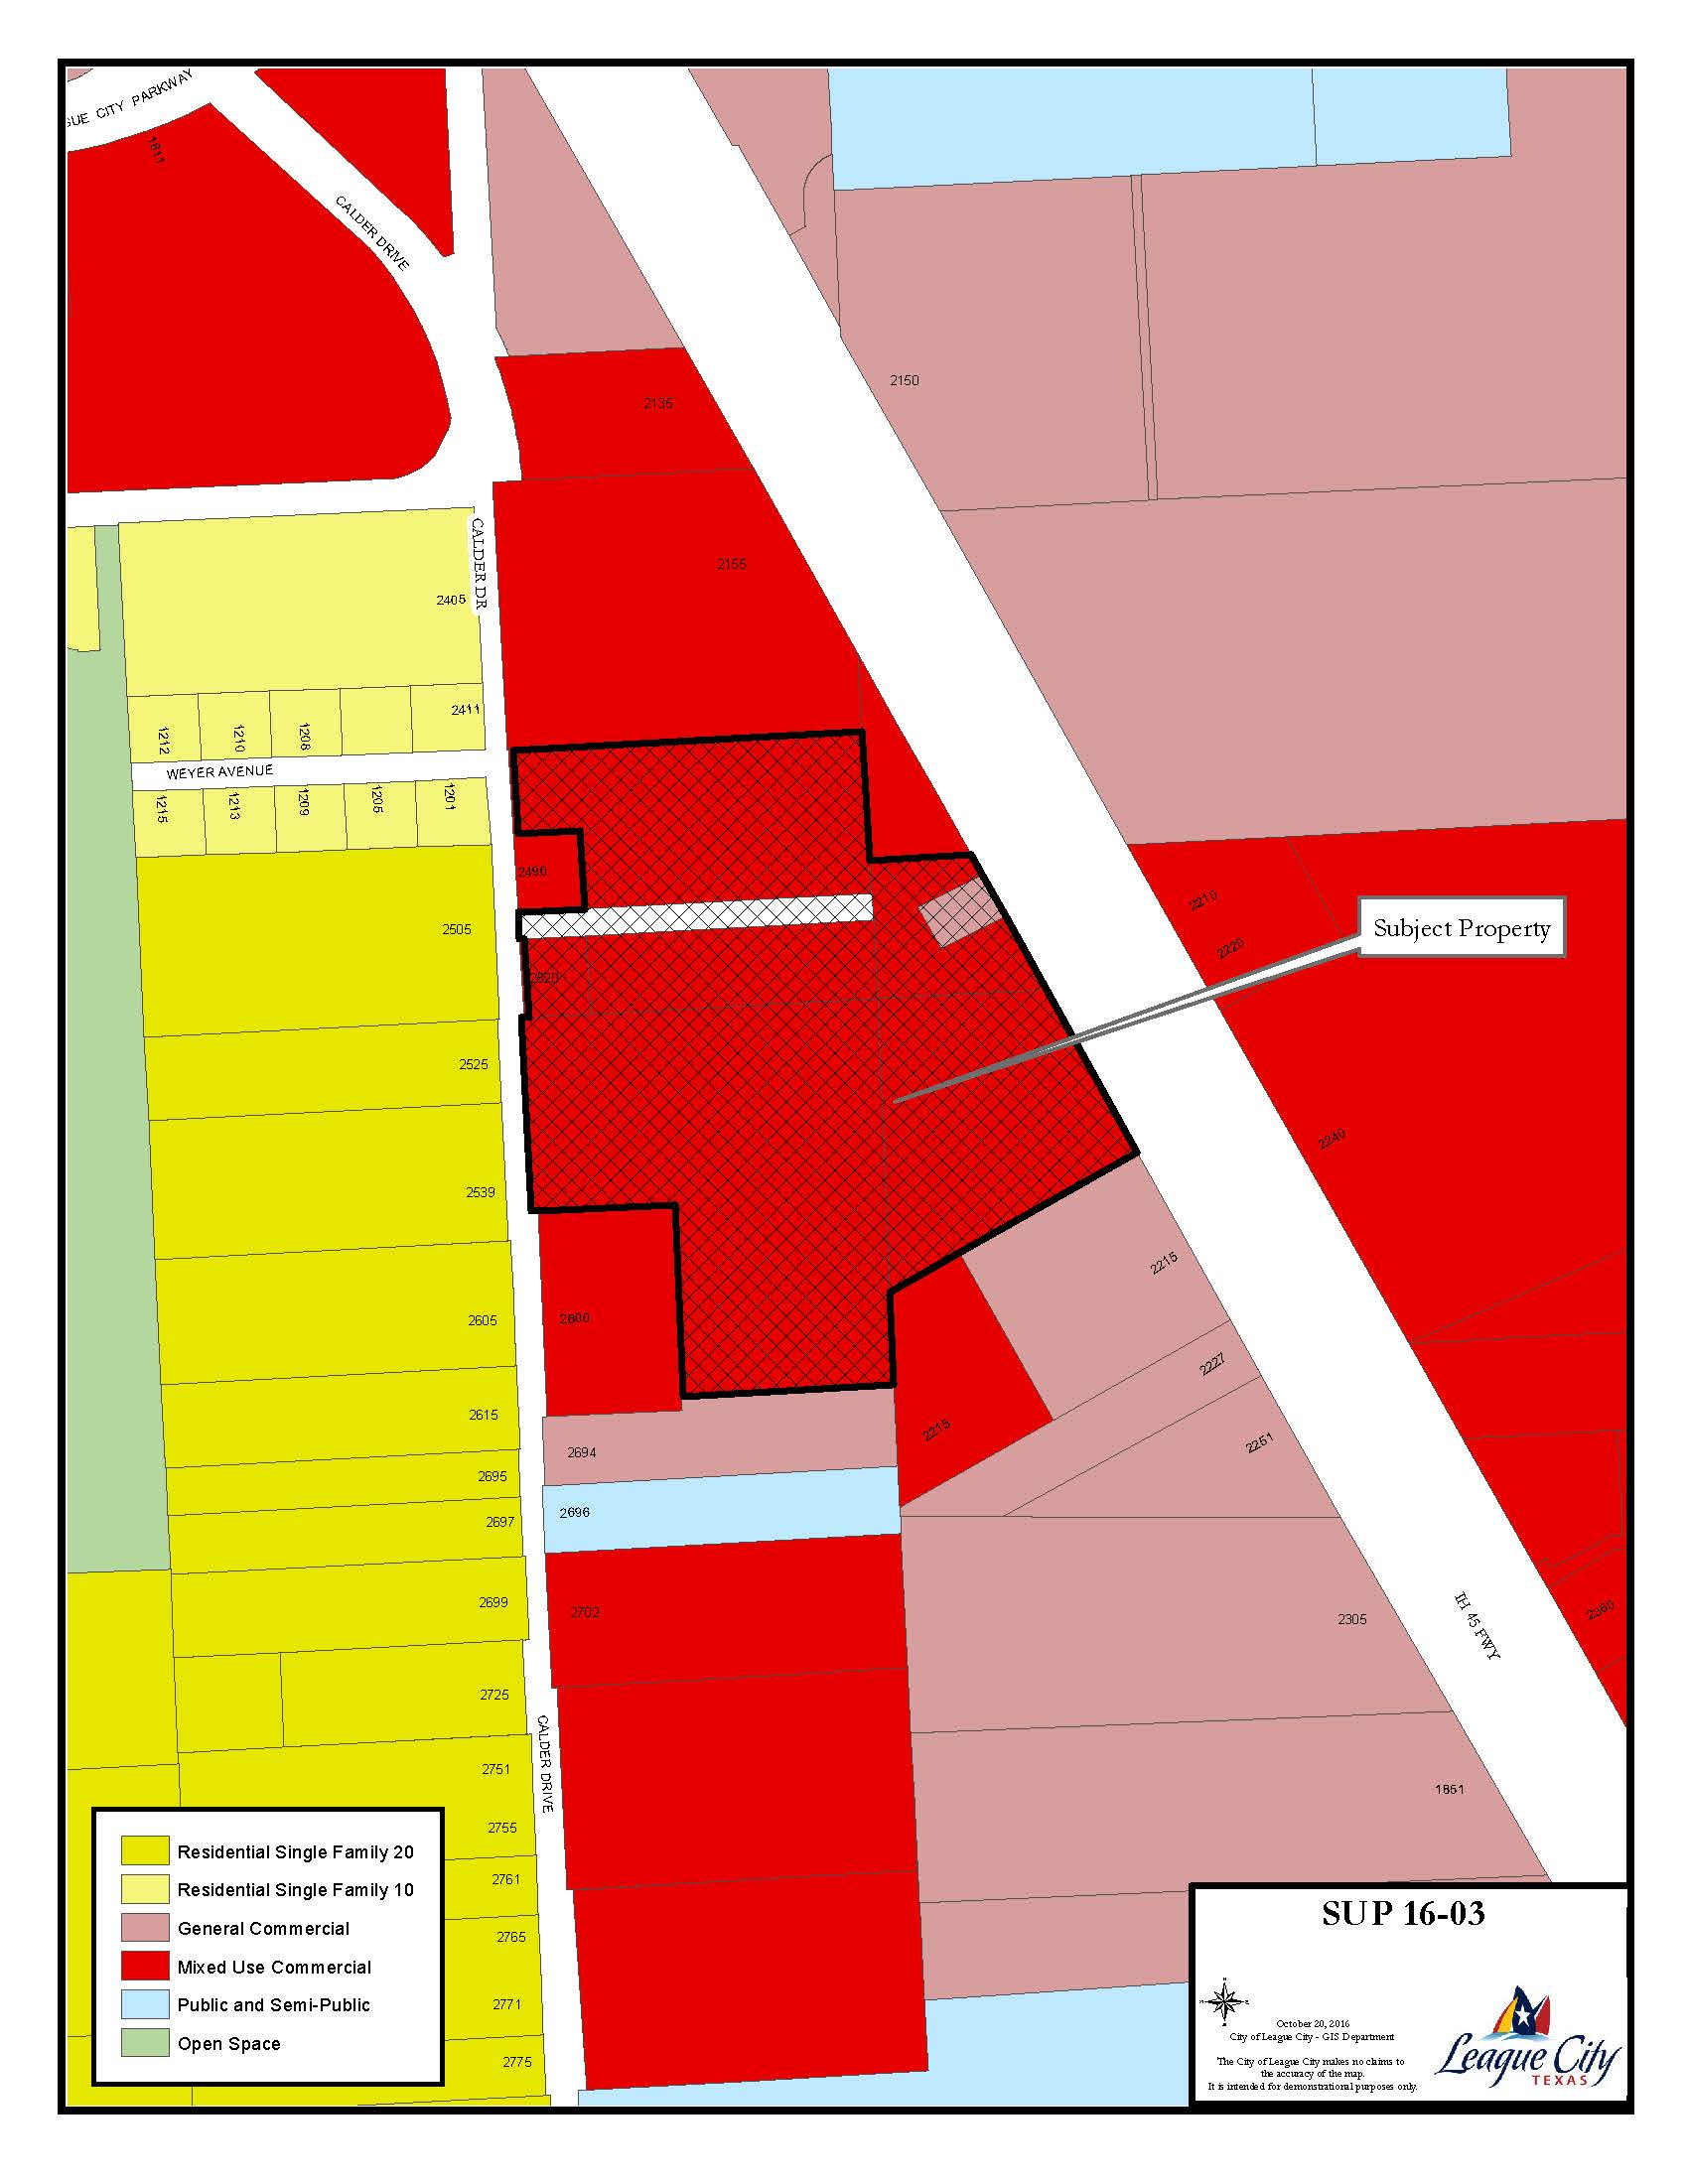 SUP 16-03 (John Eagle Honda of Clear Lake) Zoning map